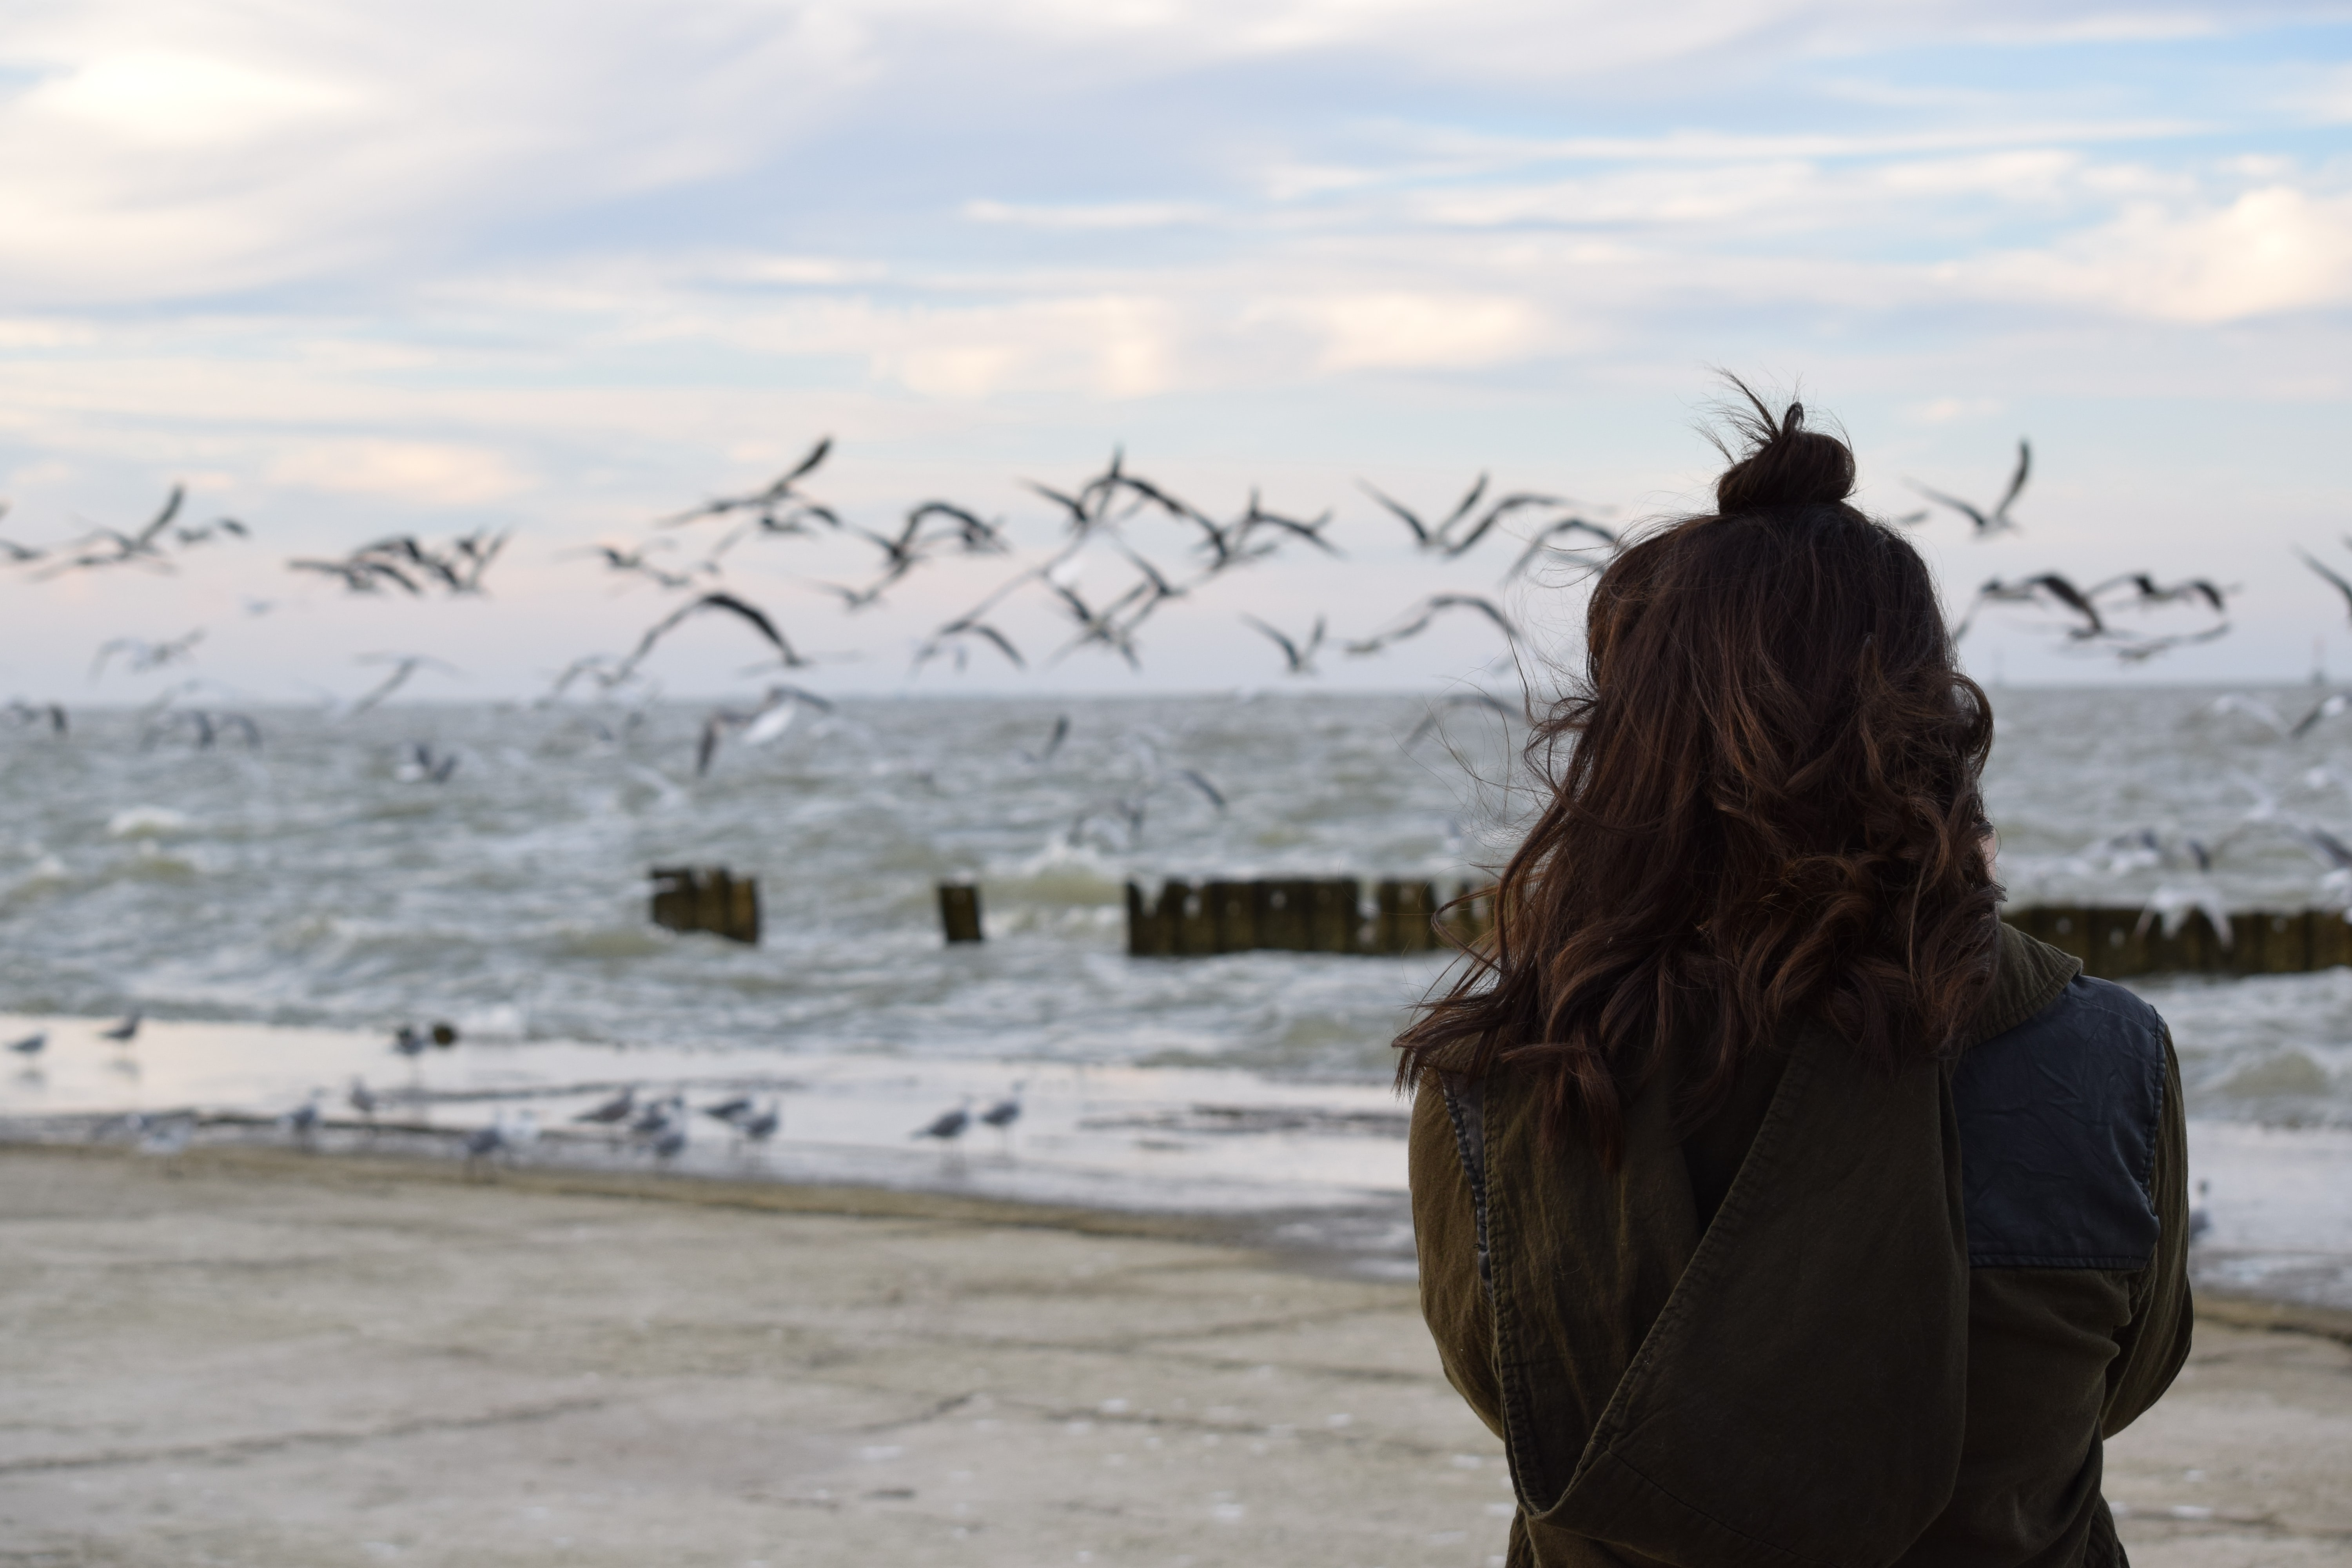 A woman watching a flock of seagulls at a beach at Texas City Dike